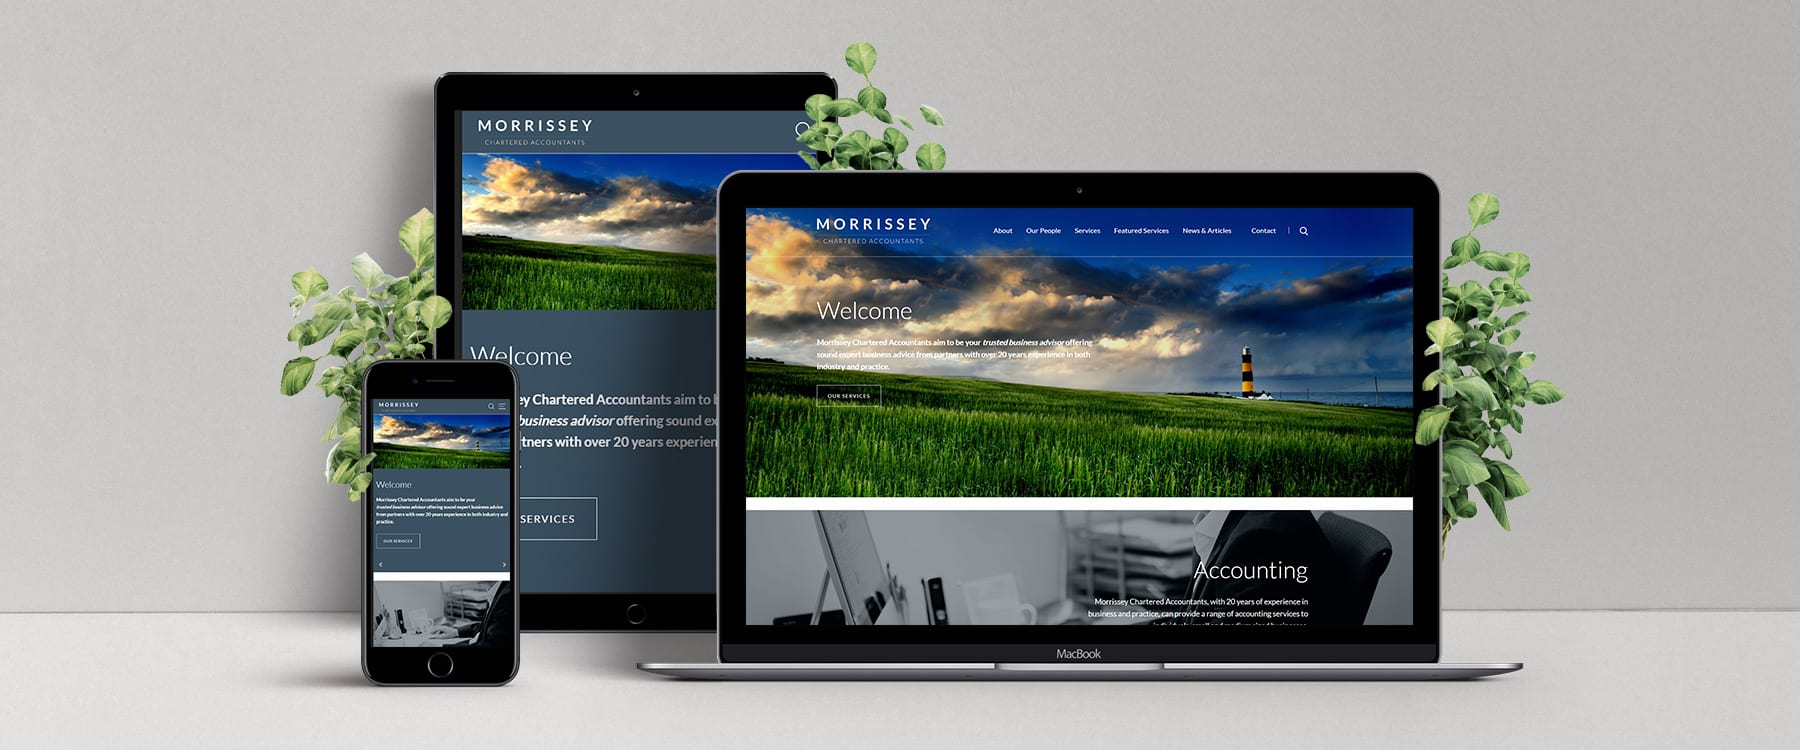 Professional New Bespoke Website for Morrissey Chartered Accountants Image